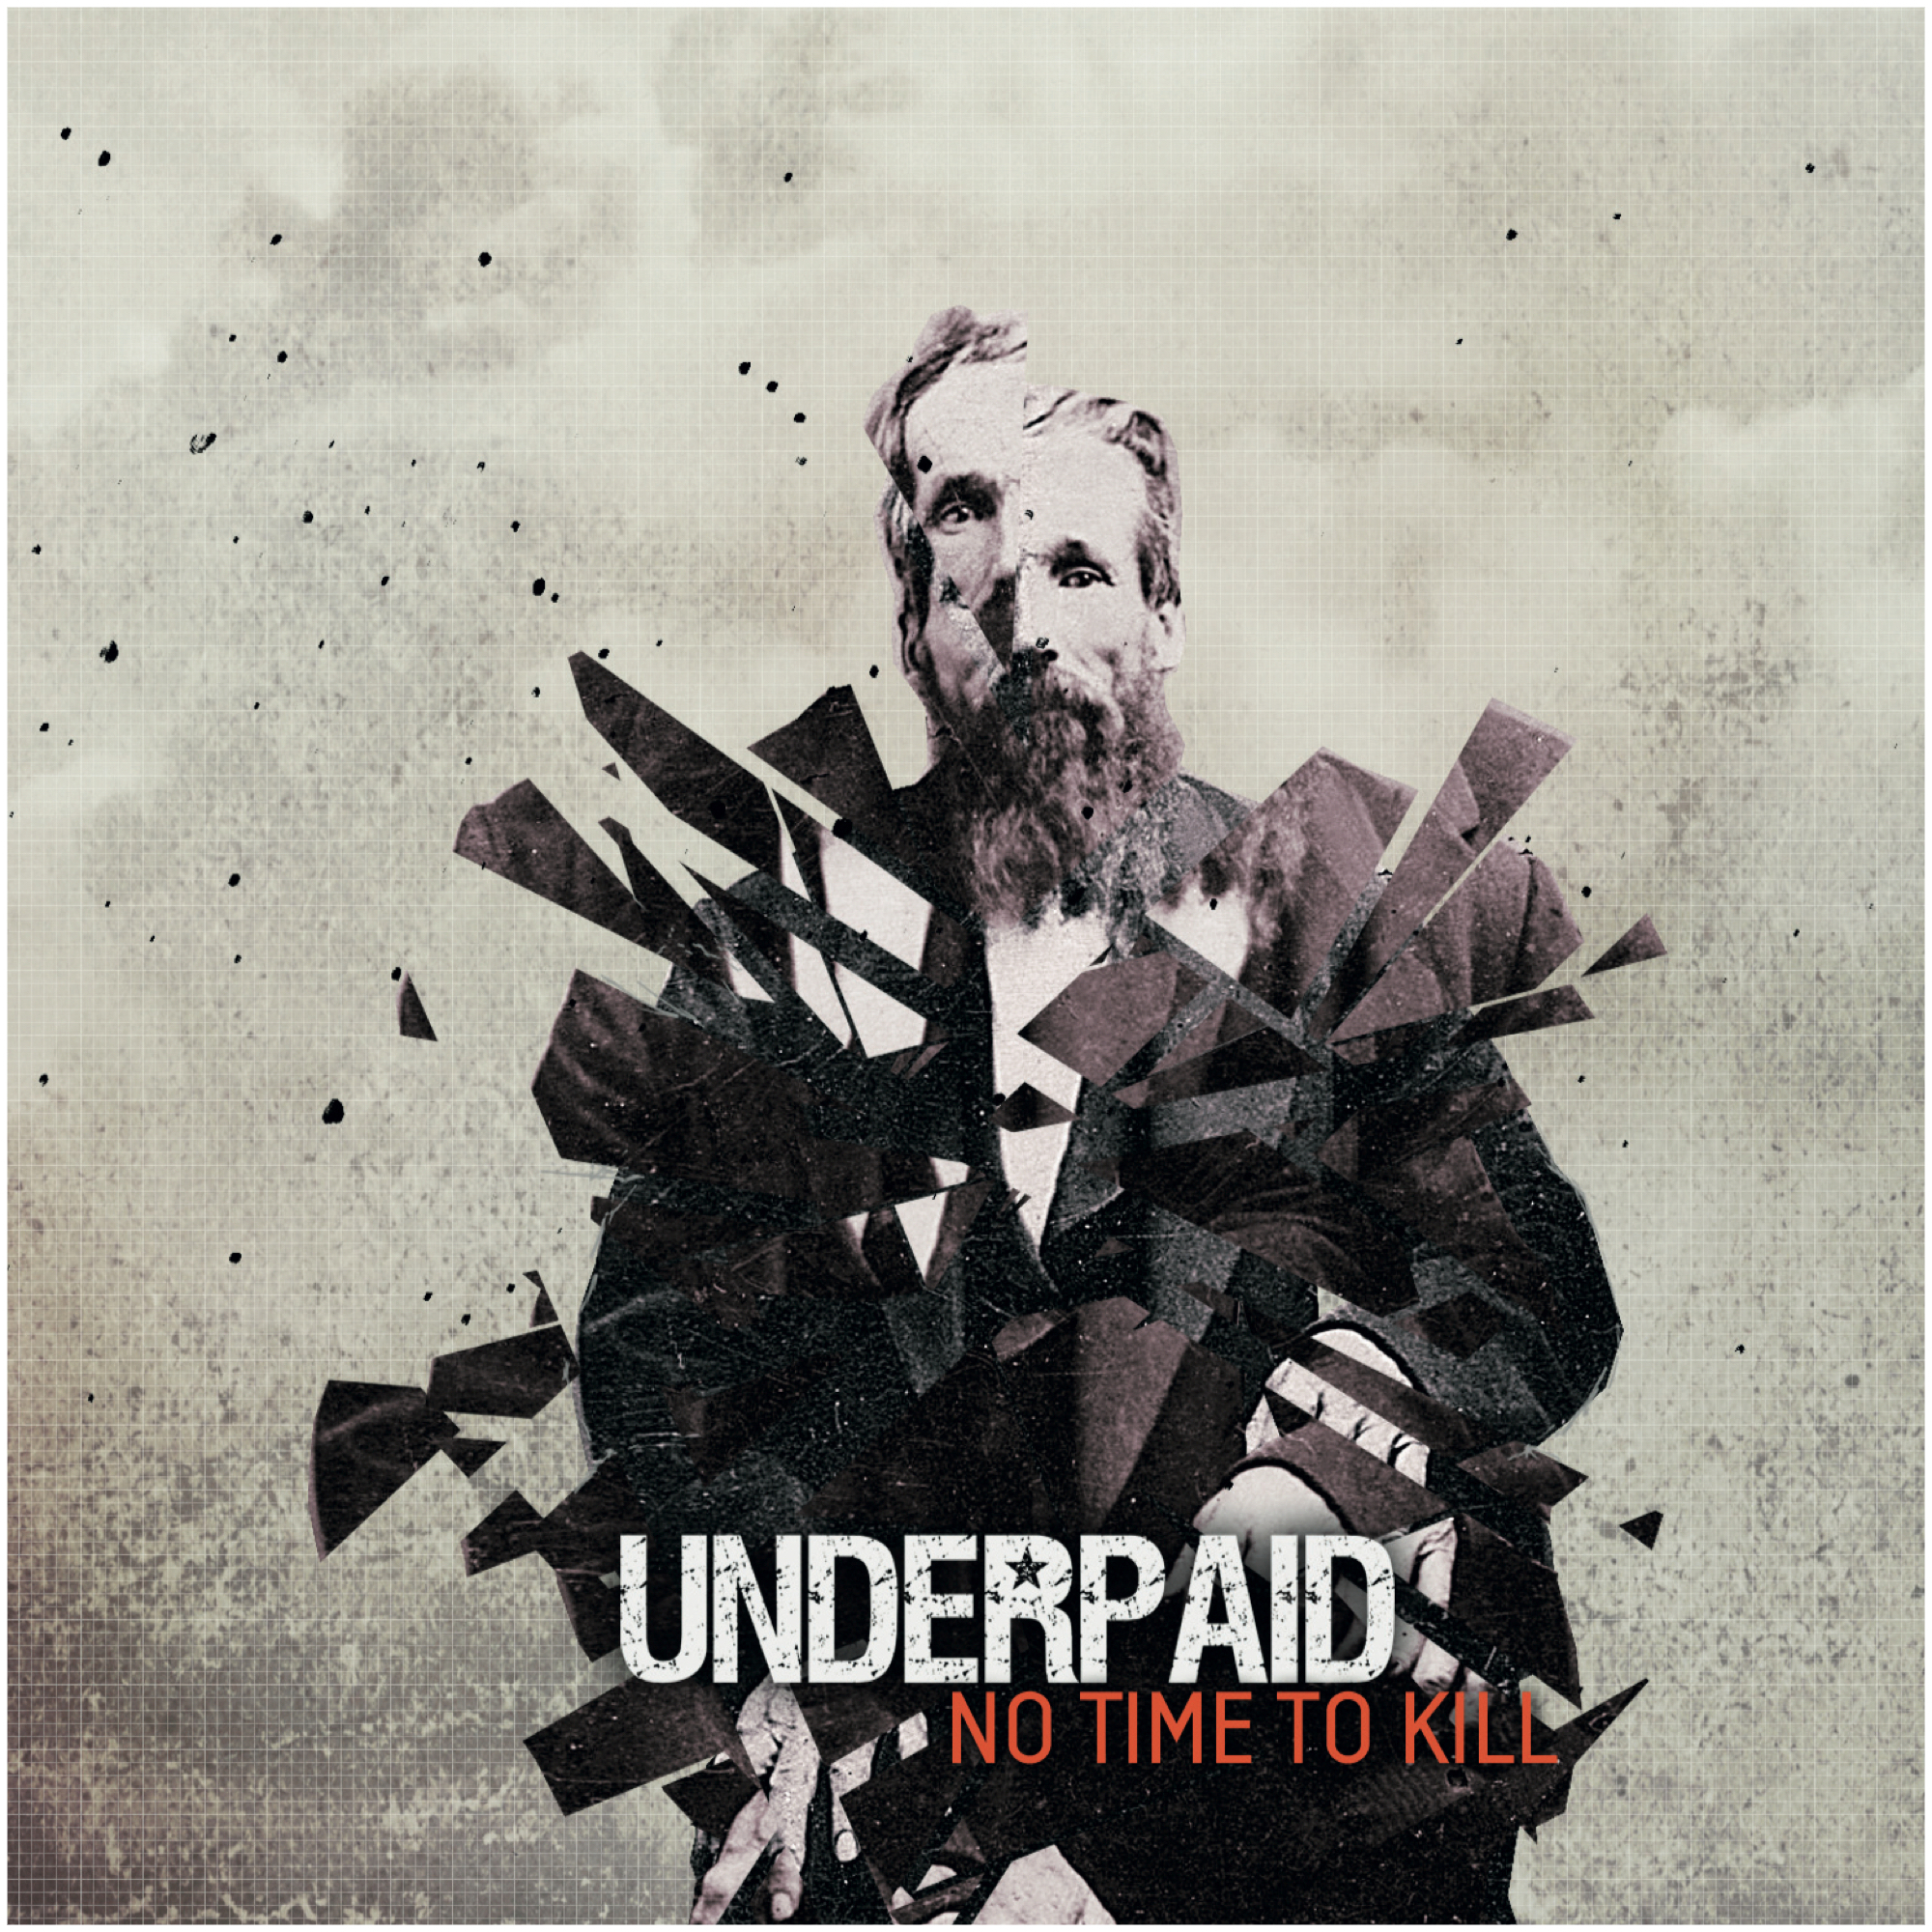 Underpaid - No Time To Kill